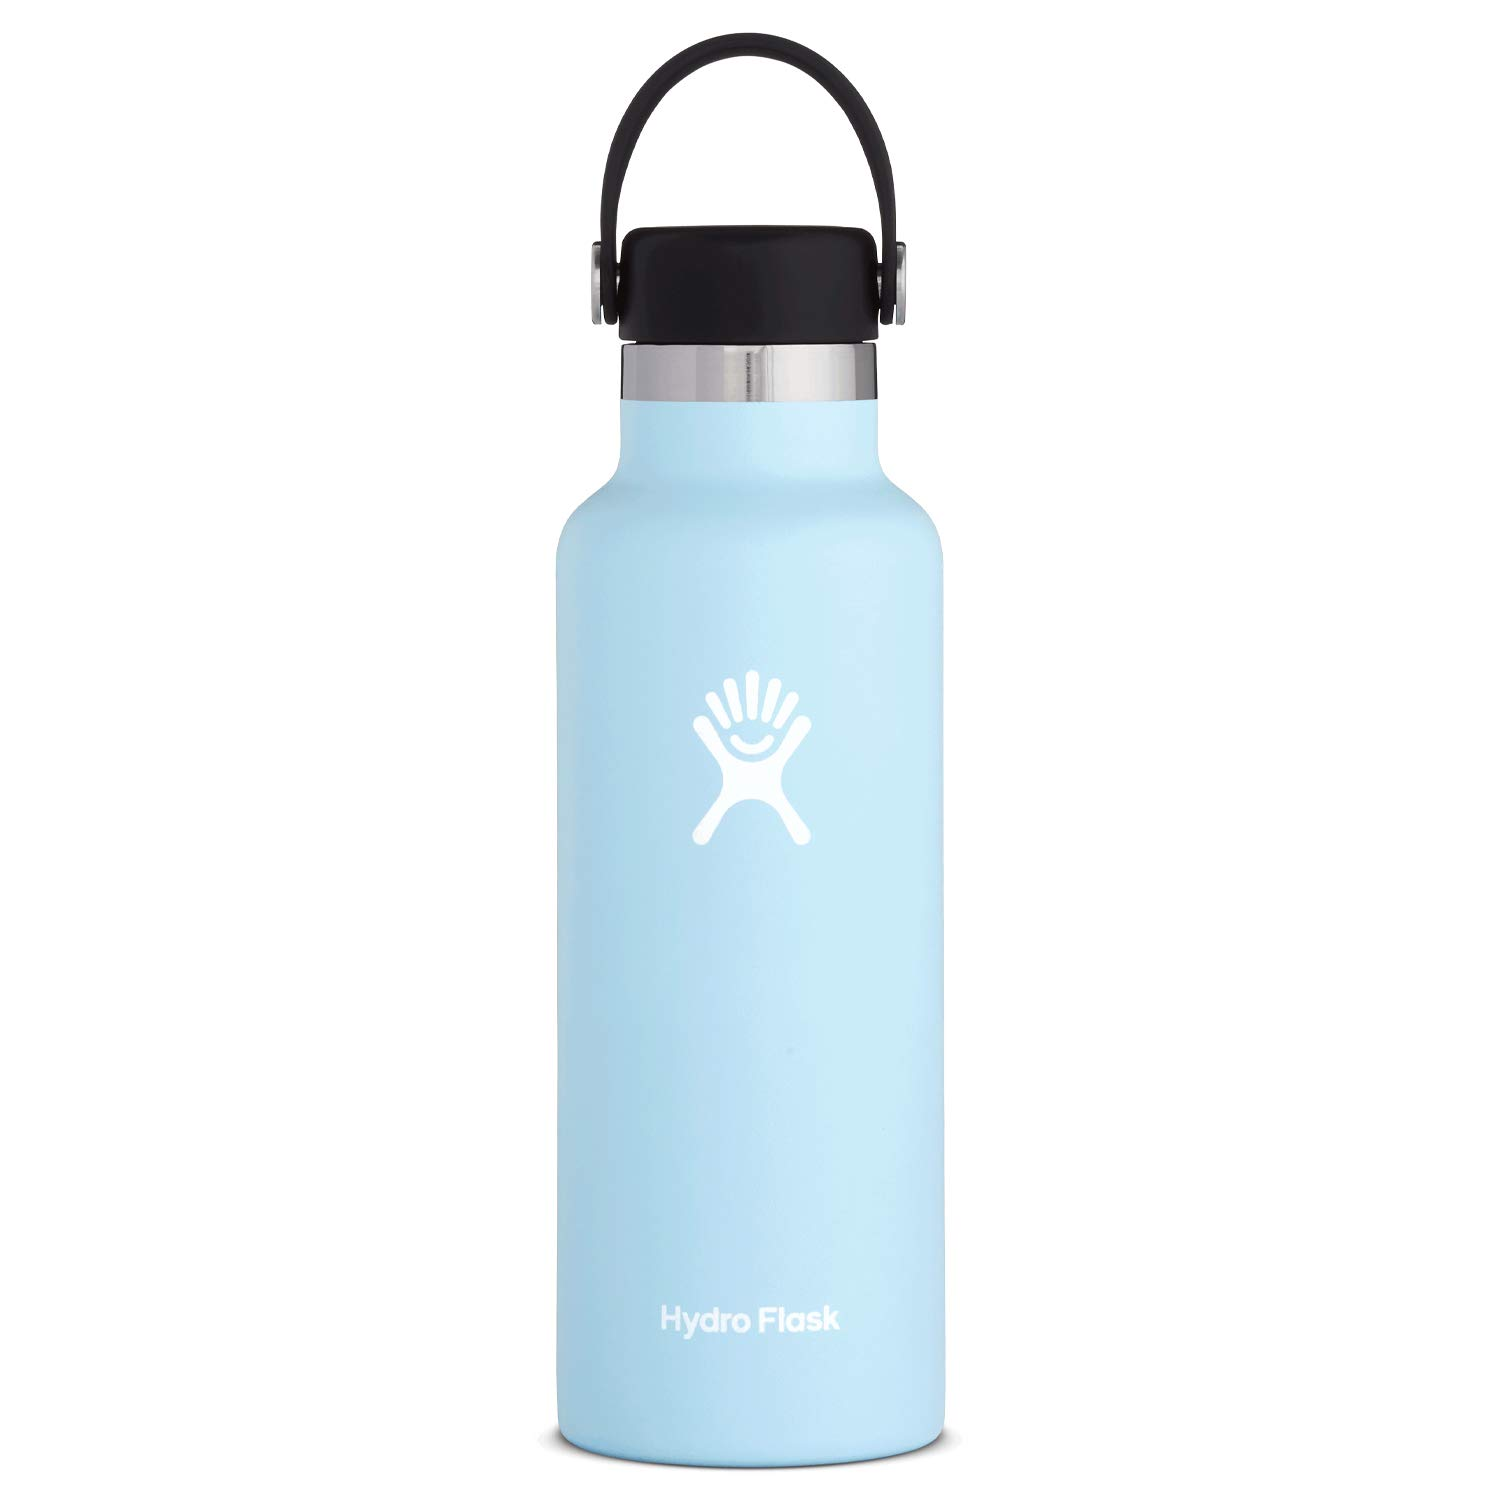 Hydro Flask Water Bottle - Stainless Steel & Vacuum Insulated - Standard Mouth with Leak Proof Flex Cap - 18 oz, Frost by Hydro Flask